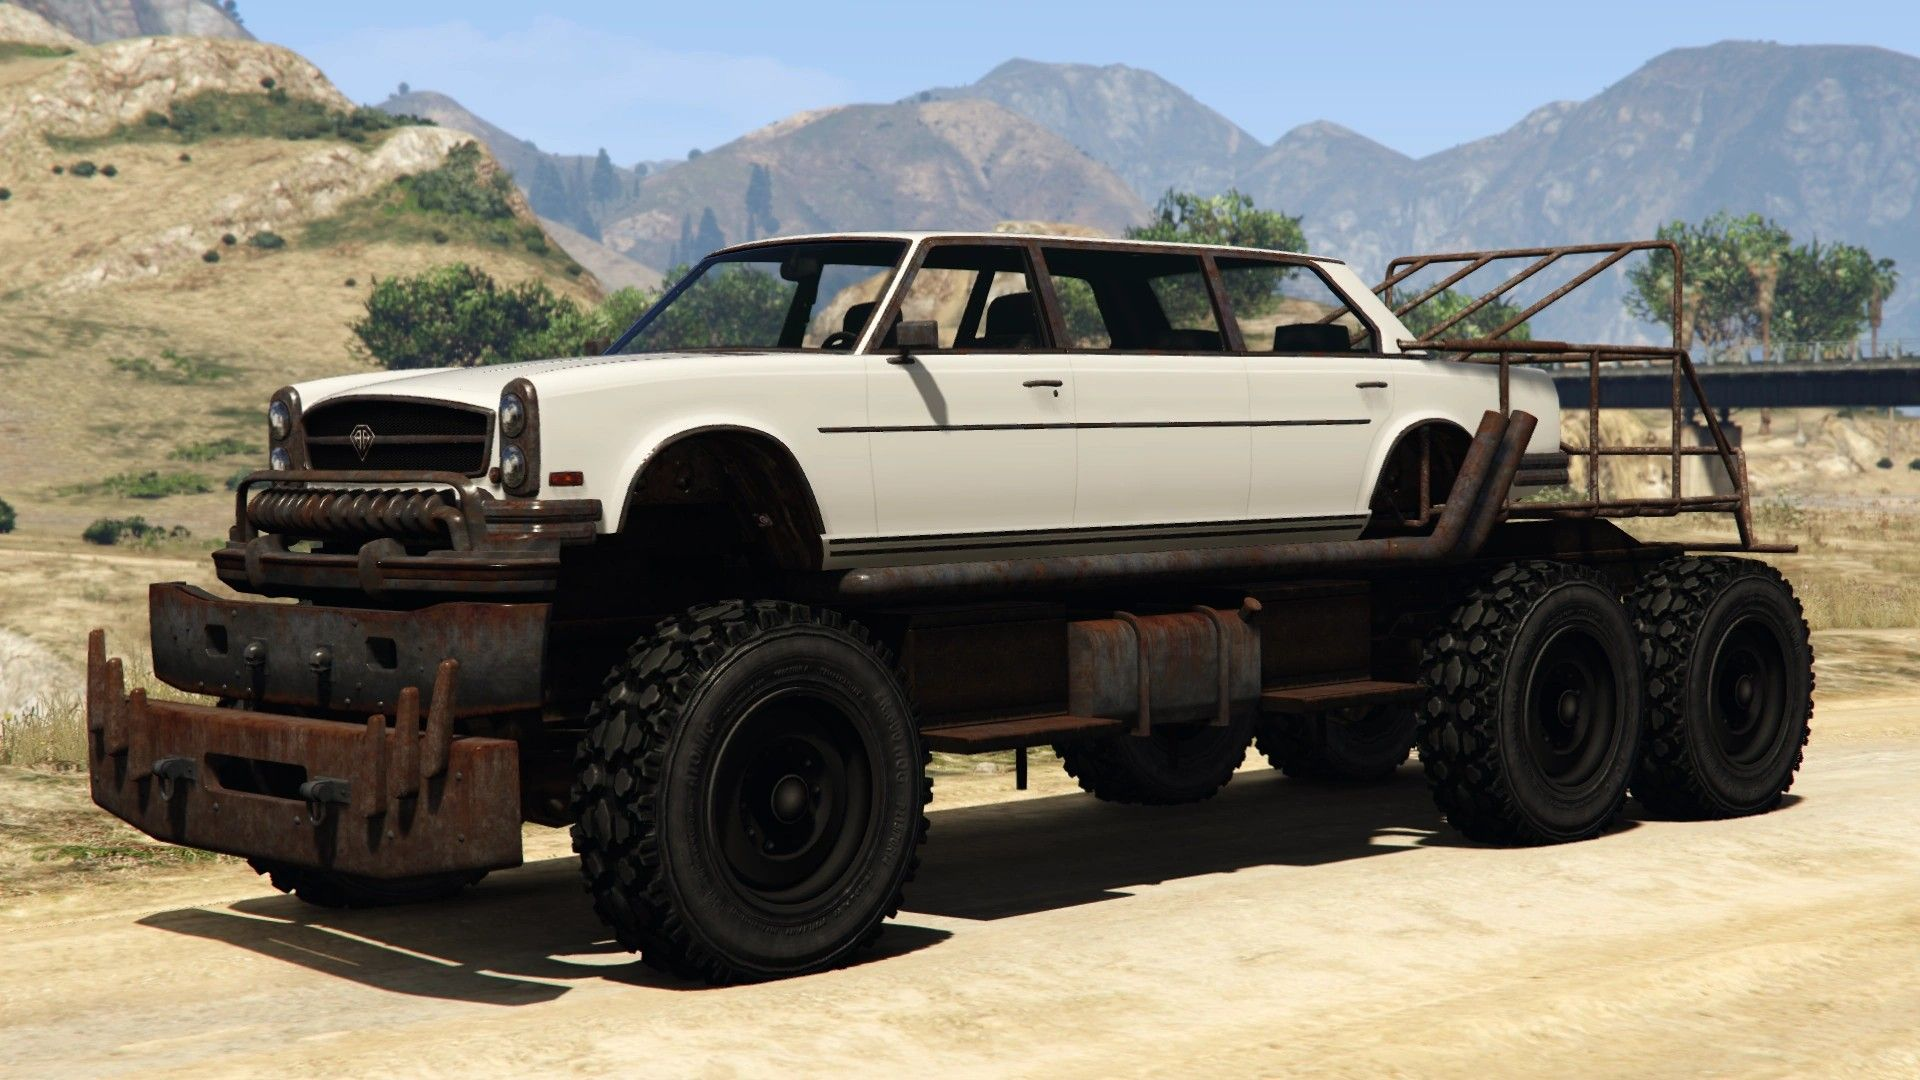 Pin By Franco Joaquin On Off Road Vehiculos Gta Cars Grand Theft Auto Series Gta